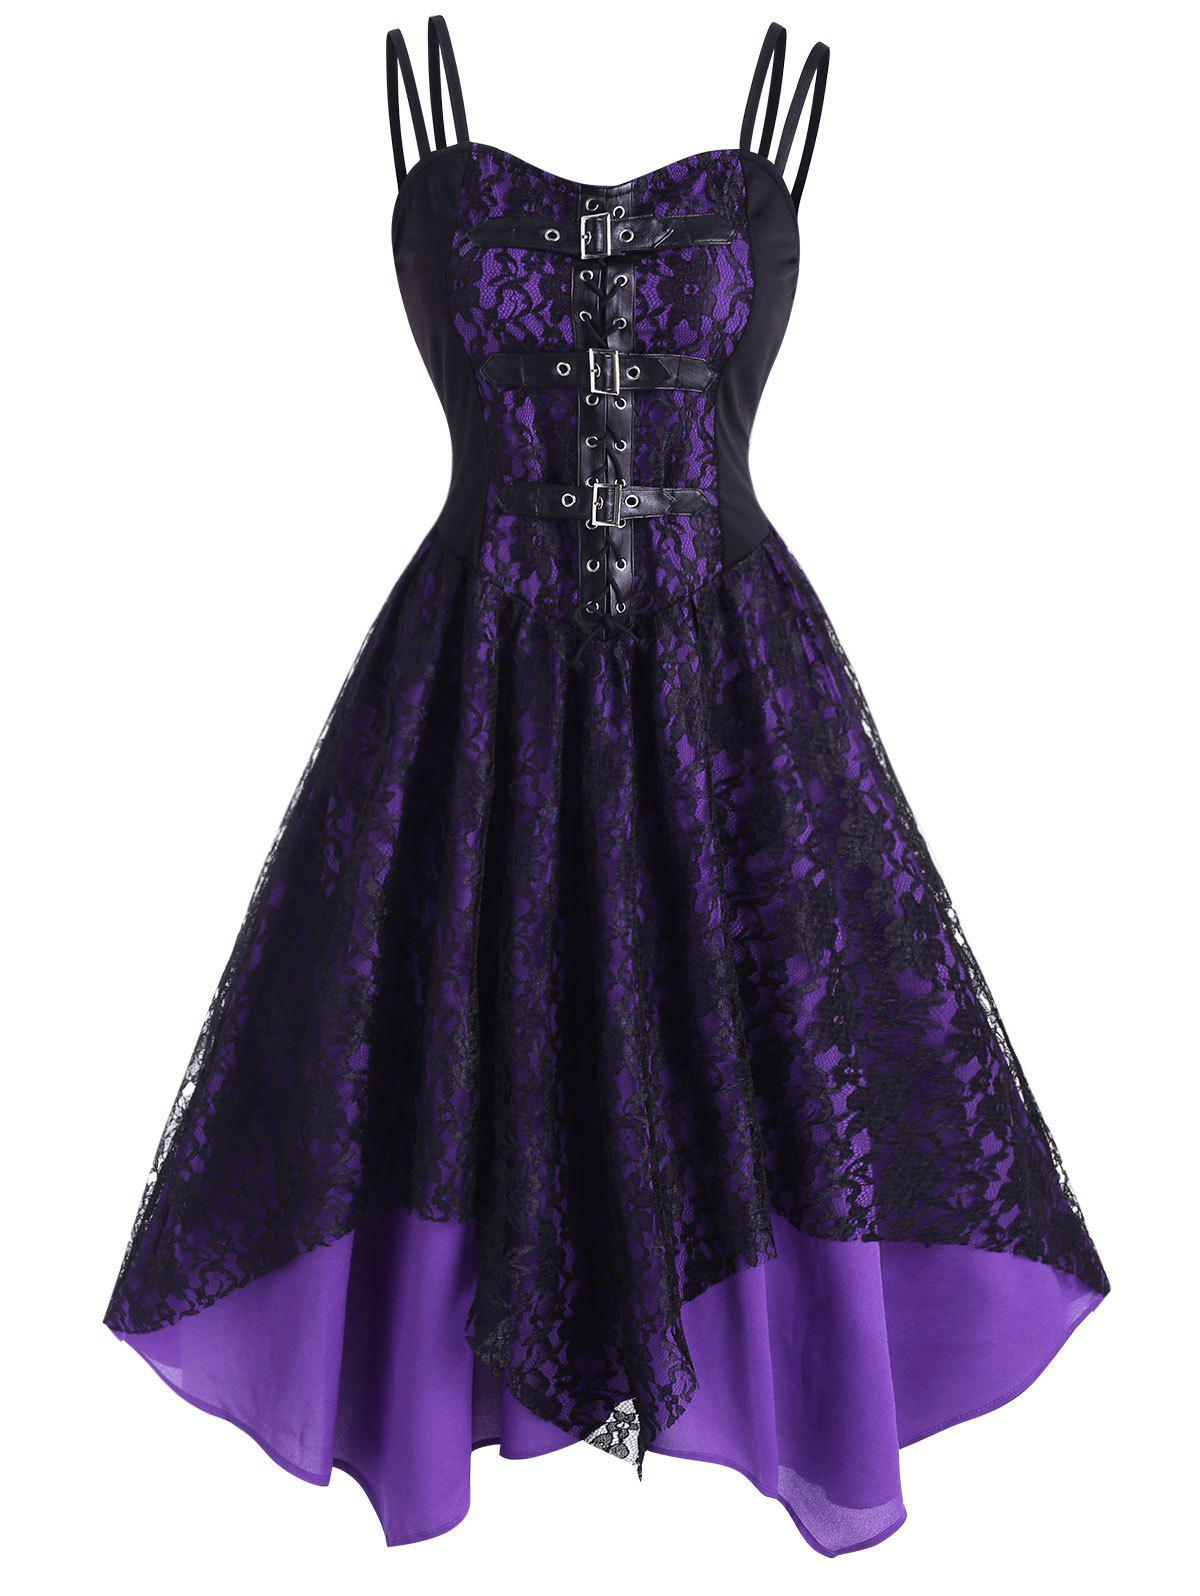 Lace Overlay Lace-Up Buckle Handkerchief Dress - PURPLE S